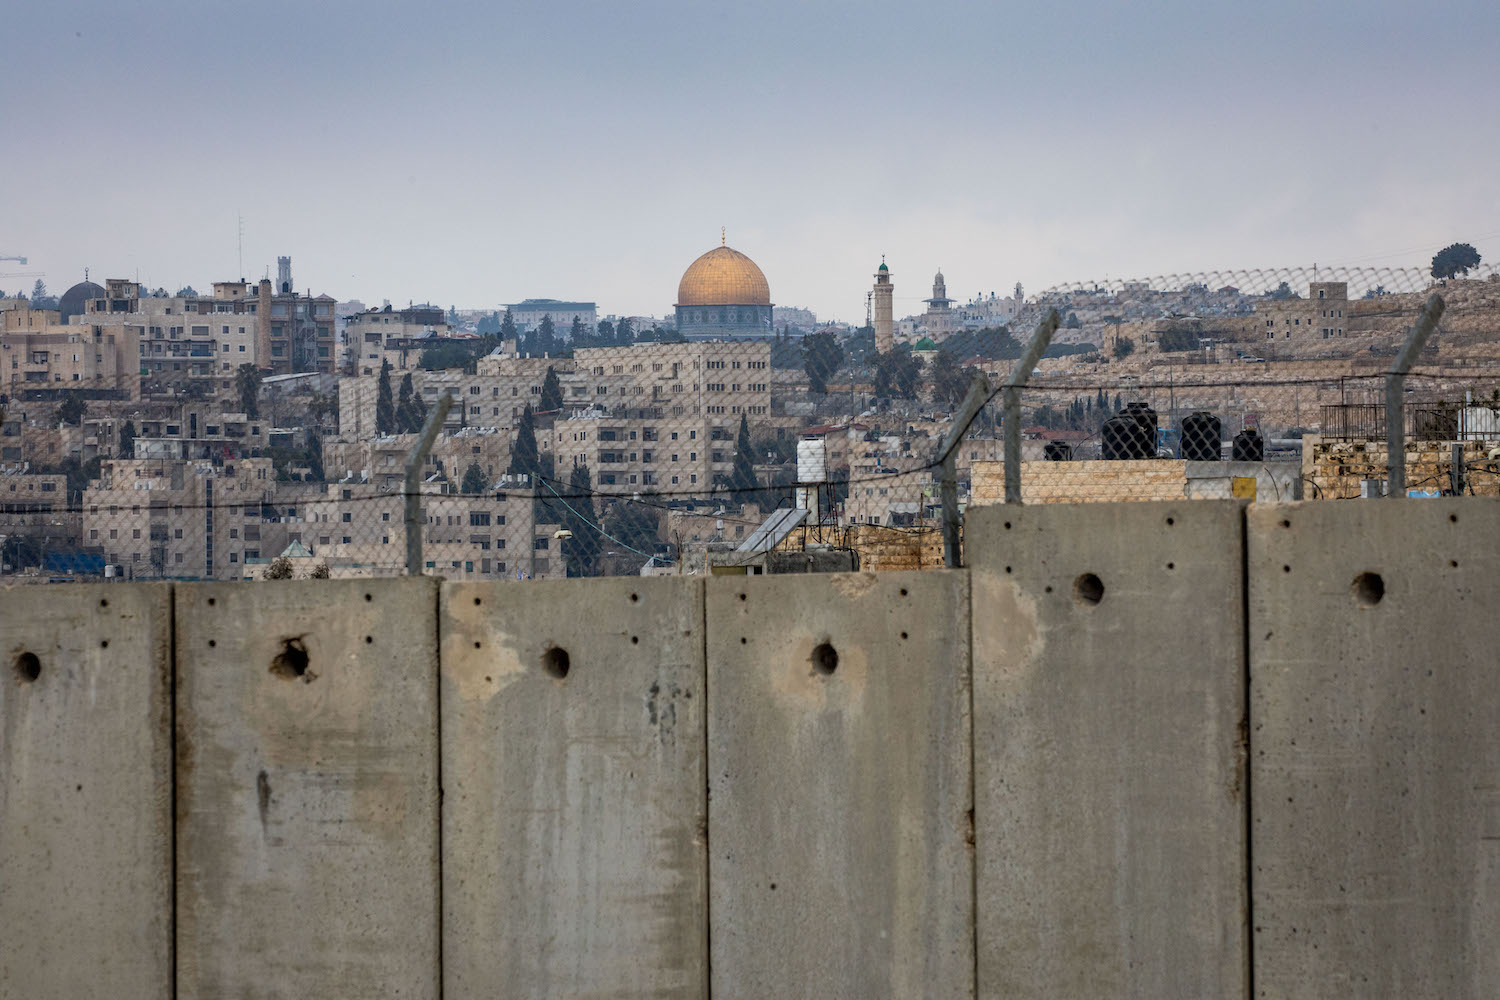 View of the separation wall and Al-Aqsa compound in the background on February 2, 2020. (Olivier Fitoussi/Flash90)